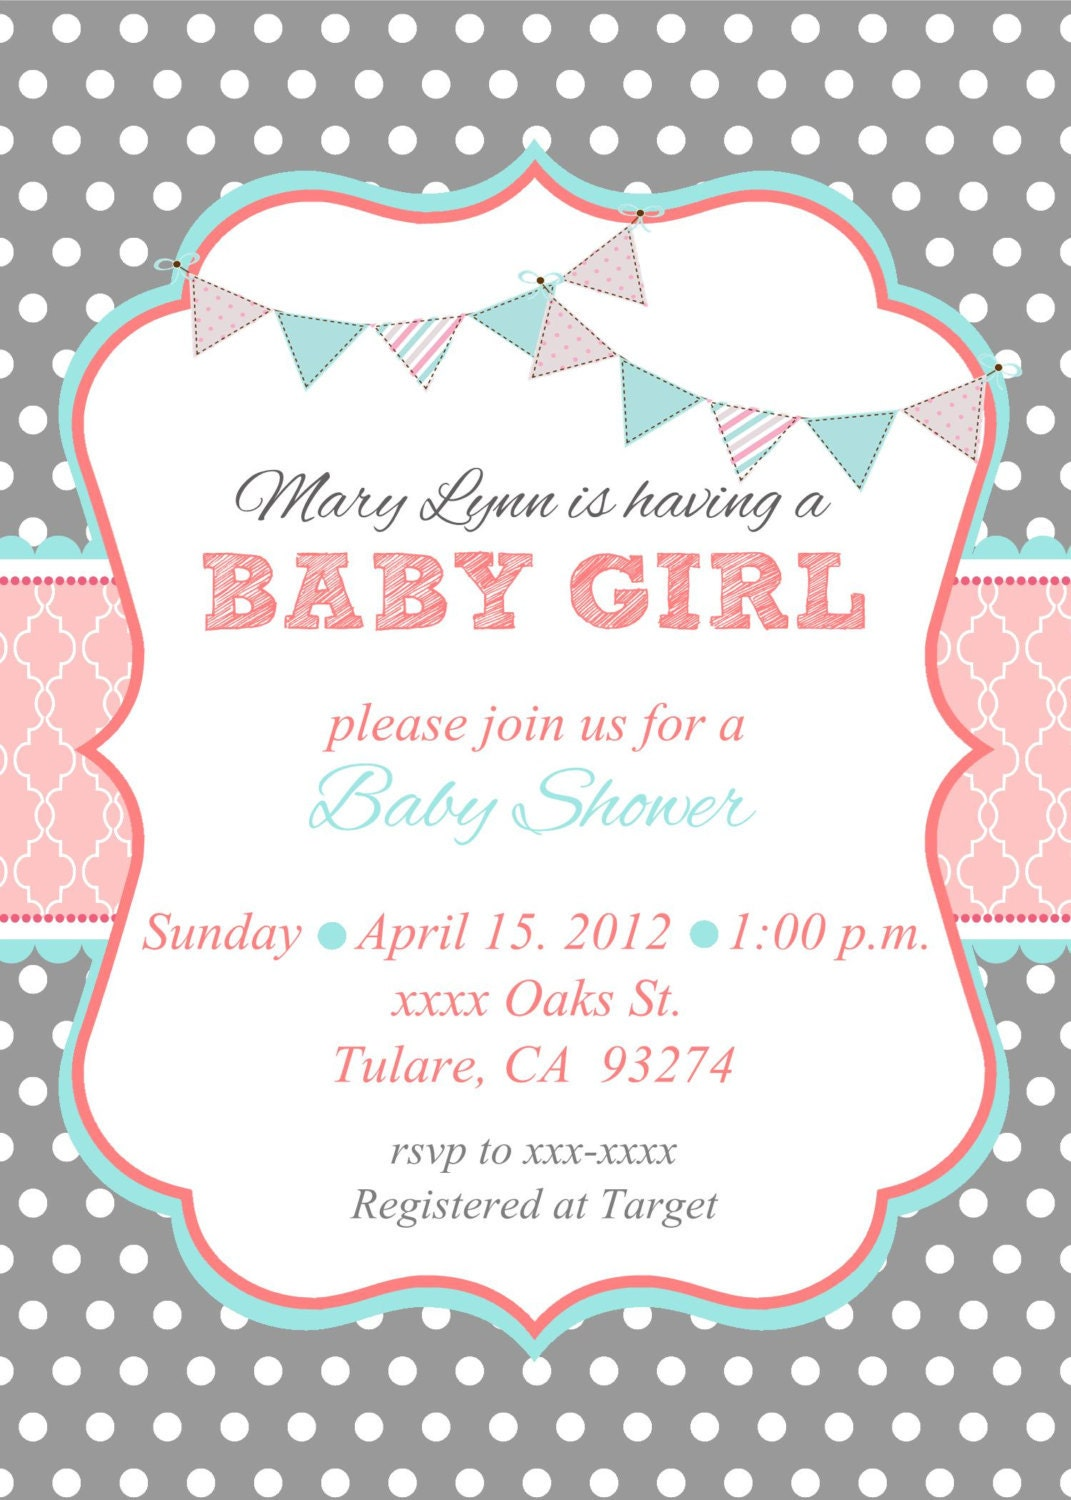 Invitations For Baby Shower Girl absolutely amazing ideas for your invitation example